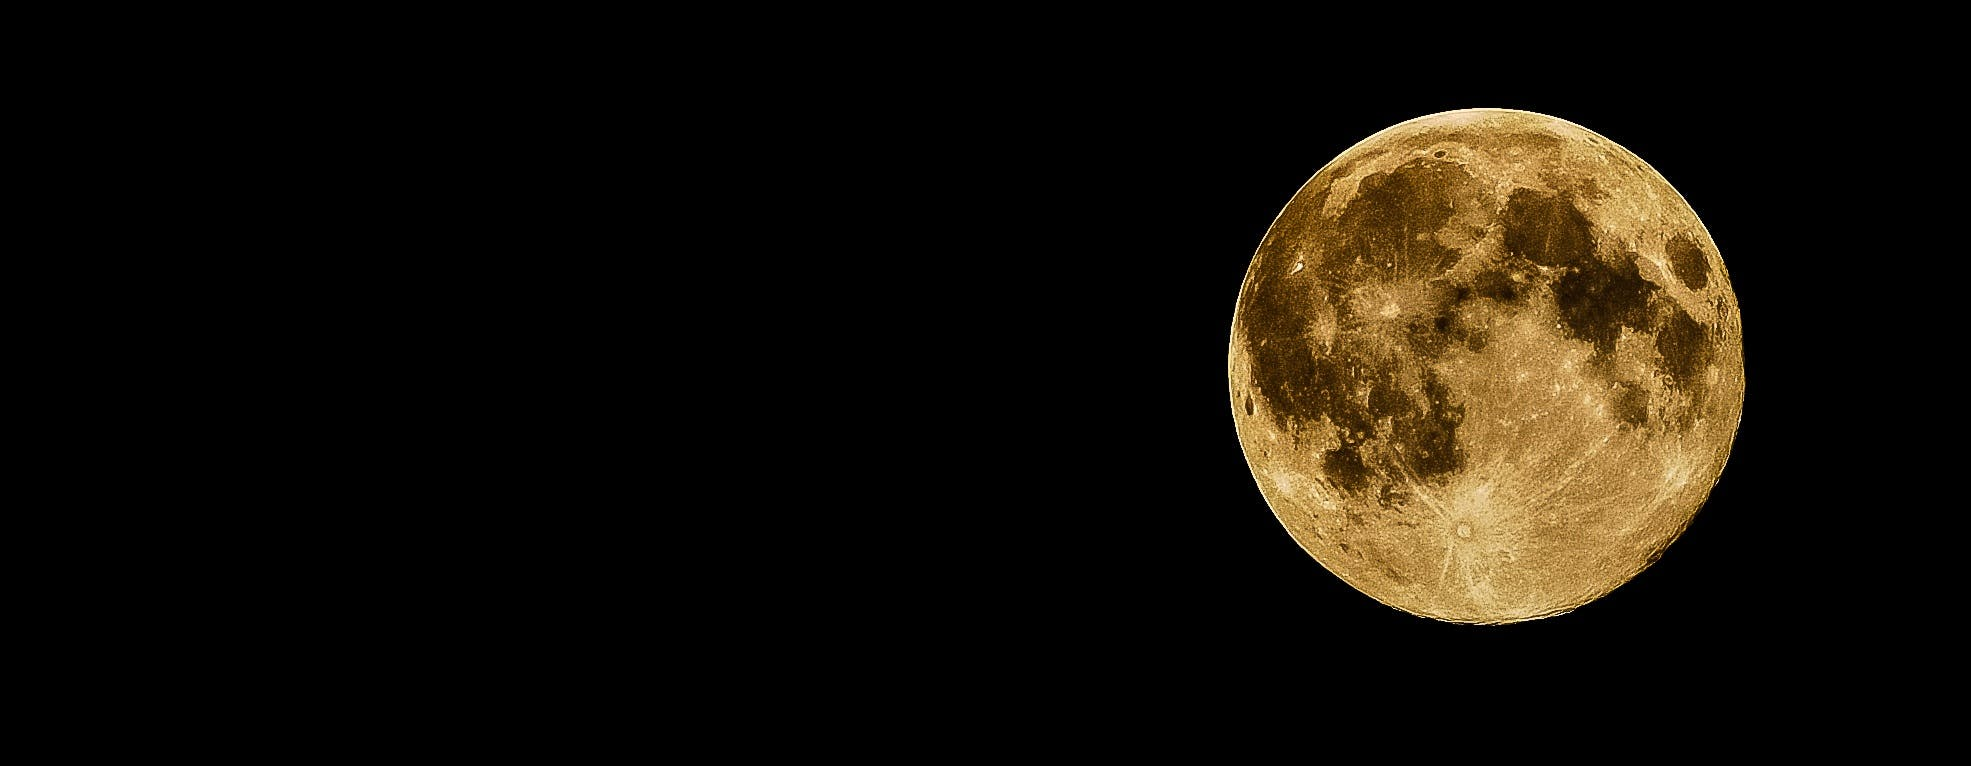 Full Moon during Night Time